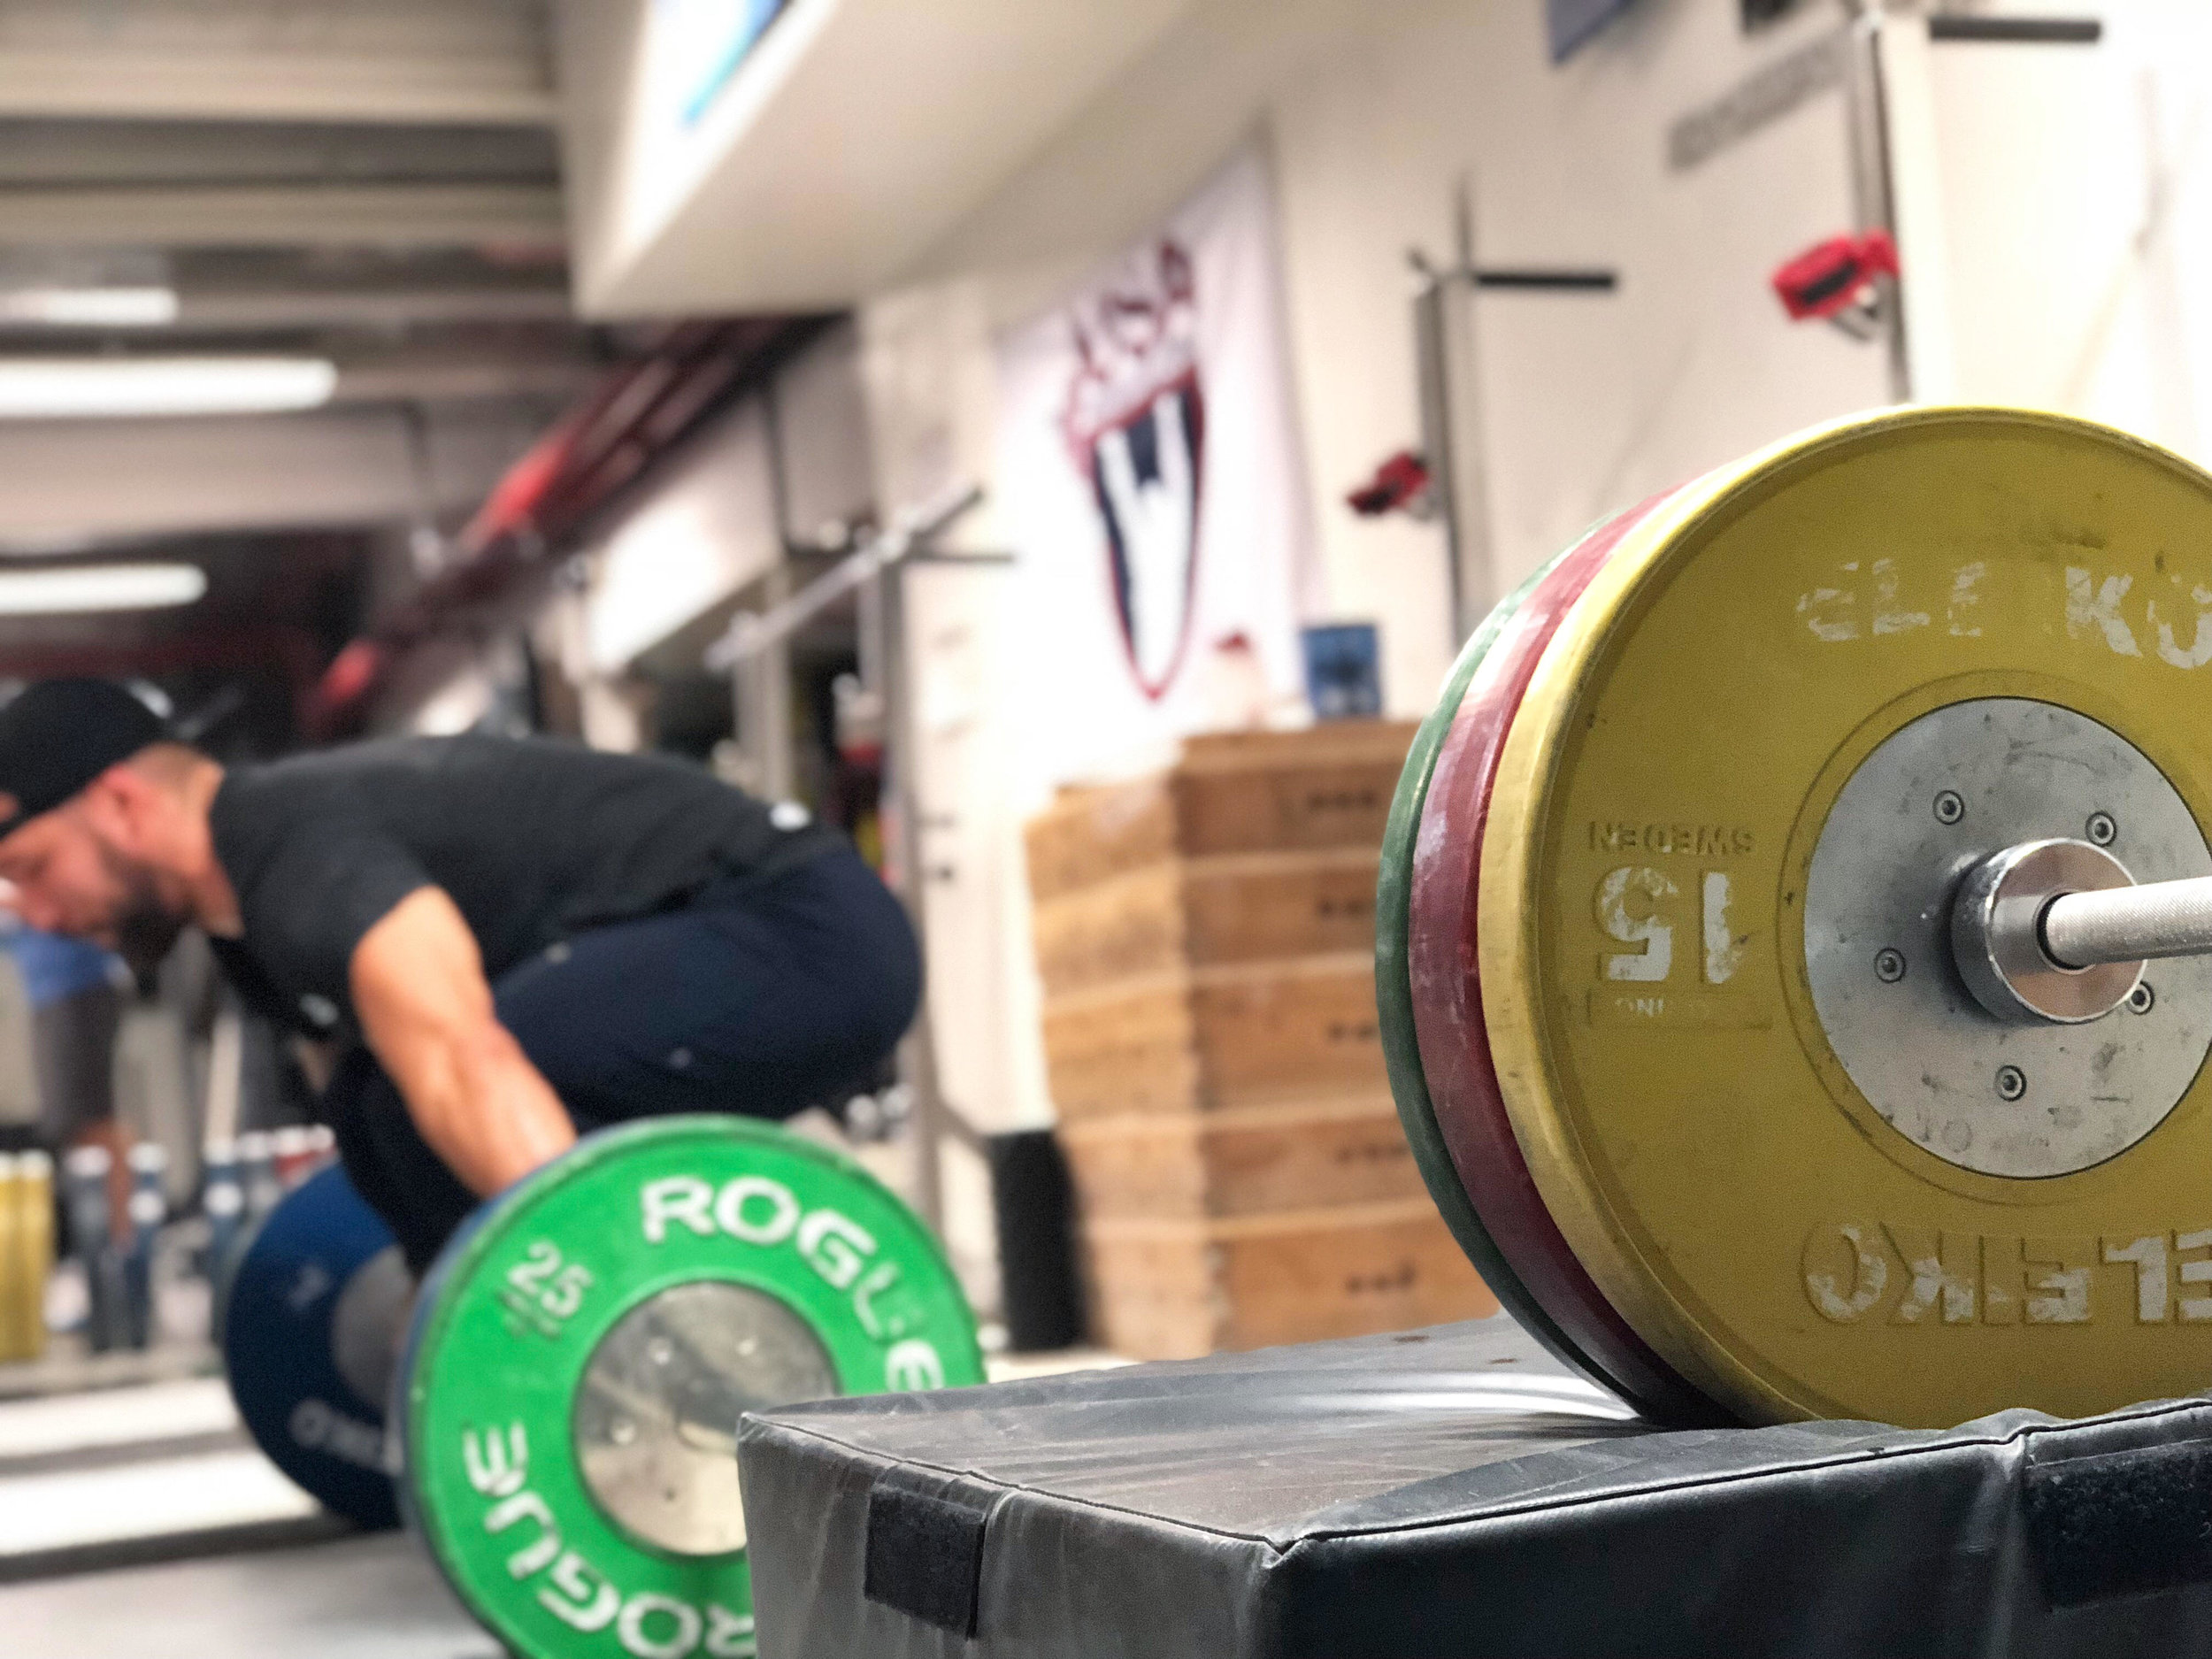 Olympic Weightlifting App - online programming for olympic lifters at the beginner, intermediate, and advanced levels.